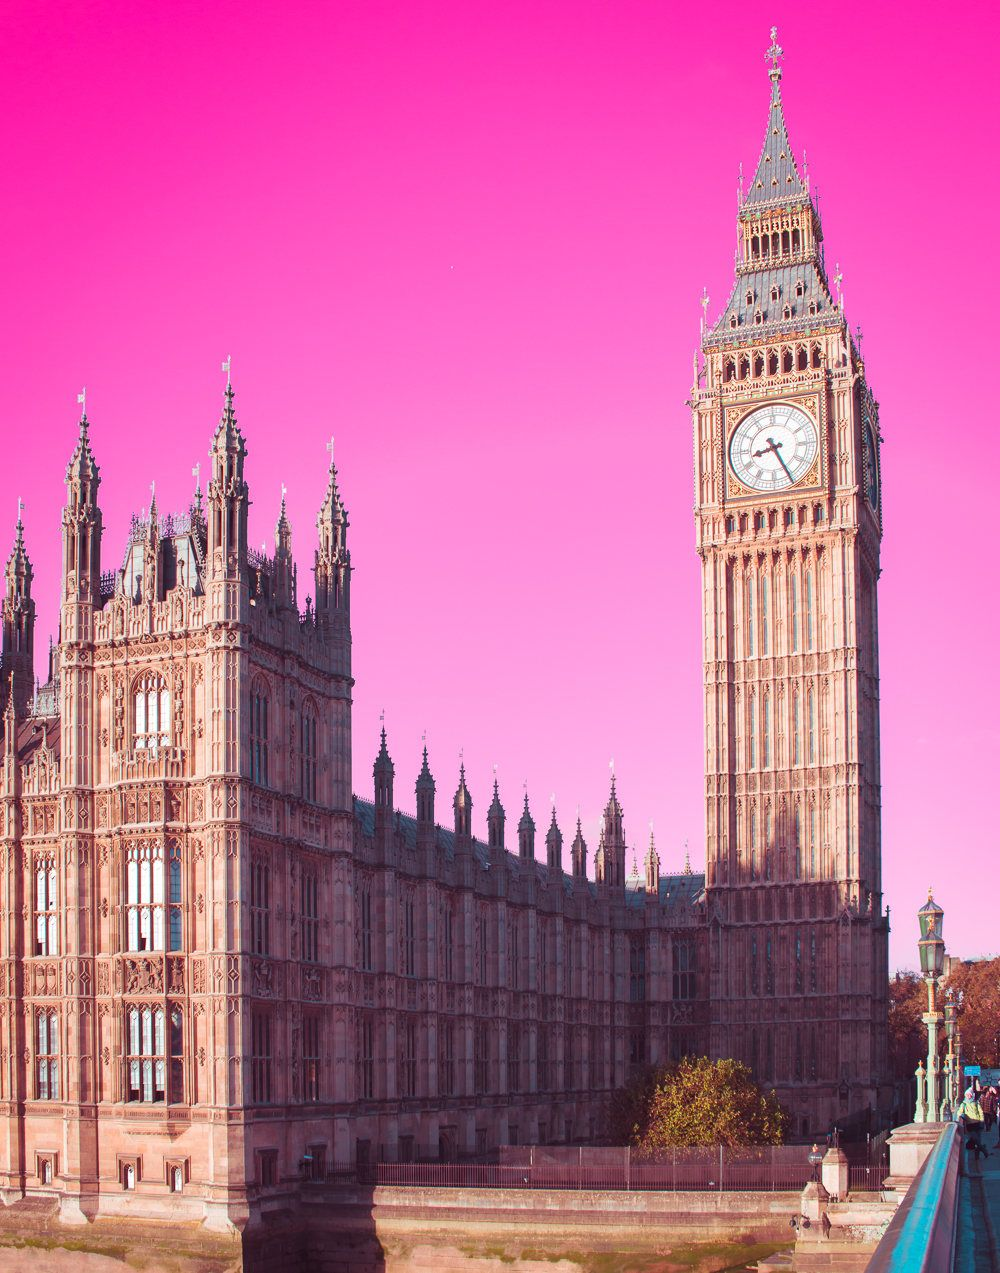 Big Ben Photo London Photography Parliament England wall art hot pink Travel Photography Historical Architecture Westminster Bridge by ... & Big Ben Photo London Photography Parliament England wall art ...